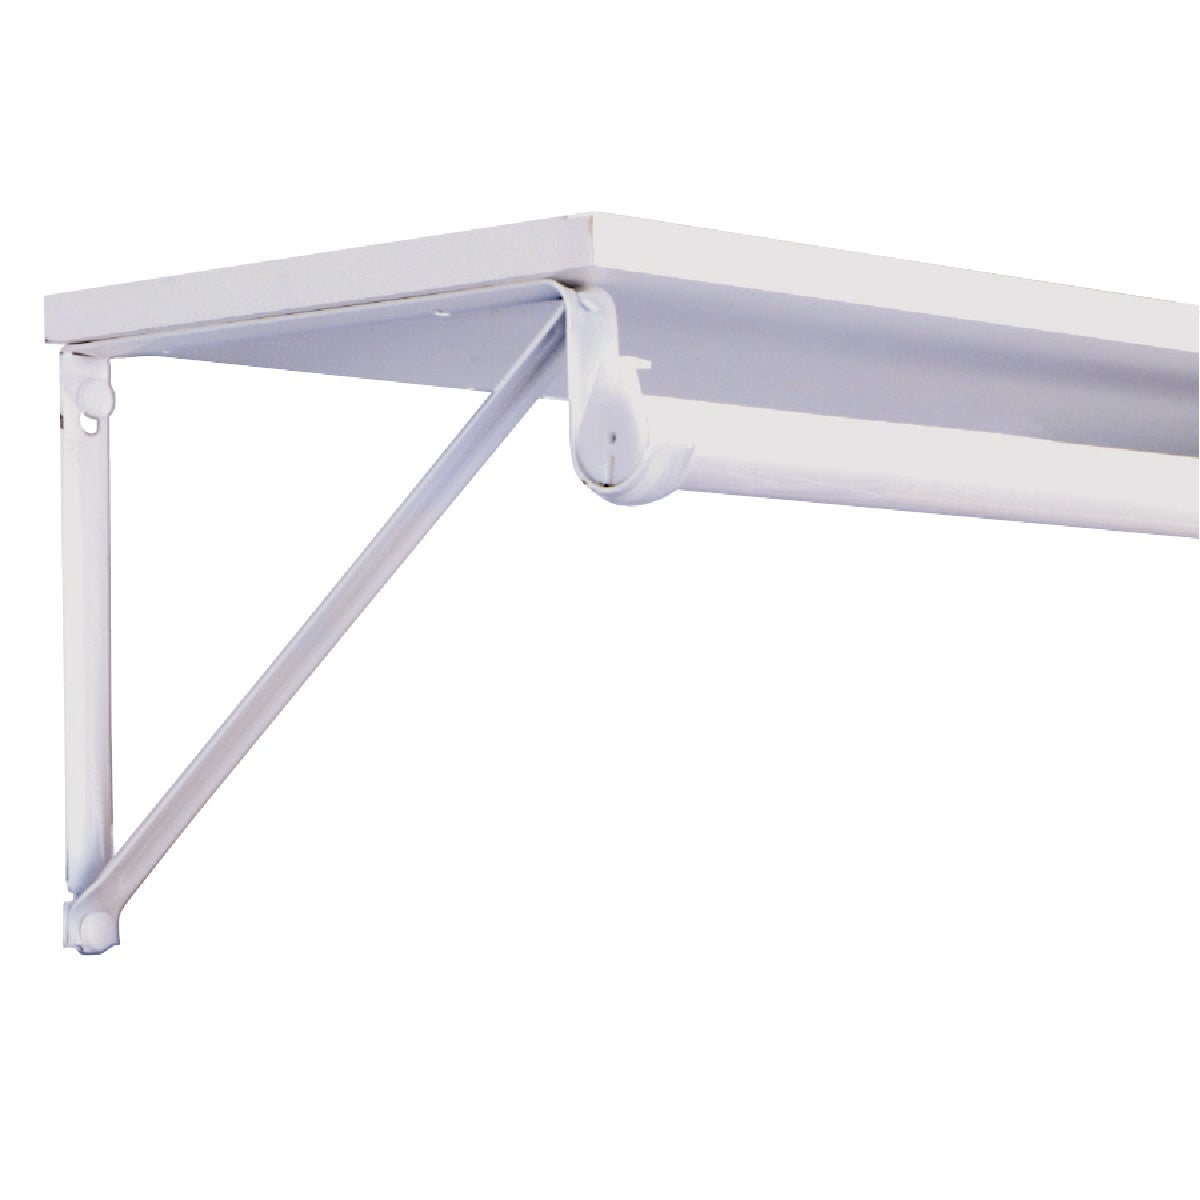 WHITE SHELF/ROD BRACKET - RP-0045-WT by Knape & Vogt Mfg Co